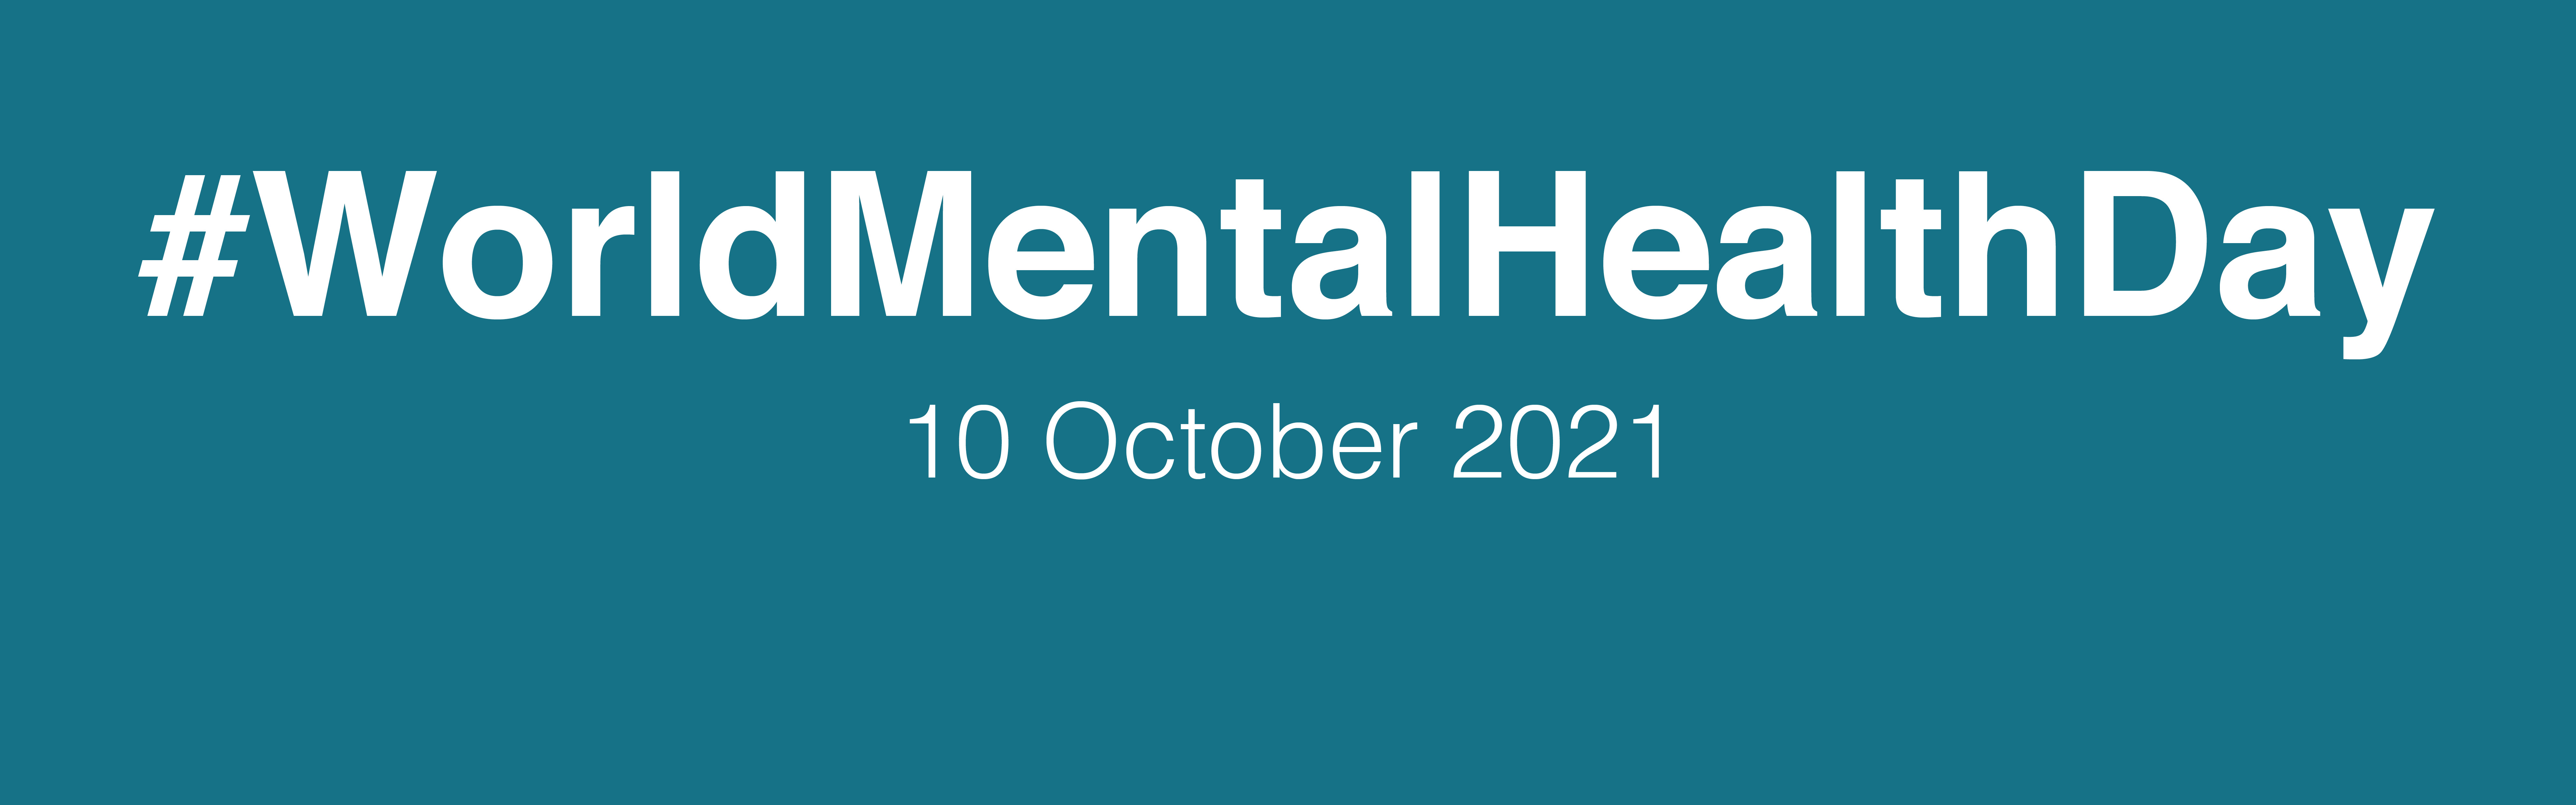 Basic solid teal colour banner - reading #WorldMentalHealthDay and the date 10 October 2021